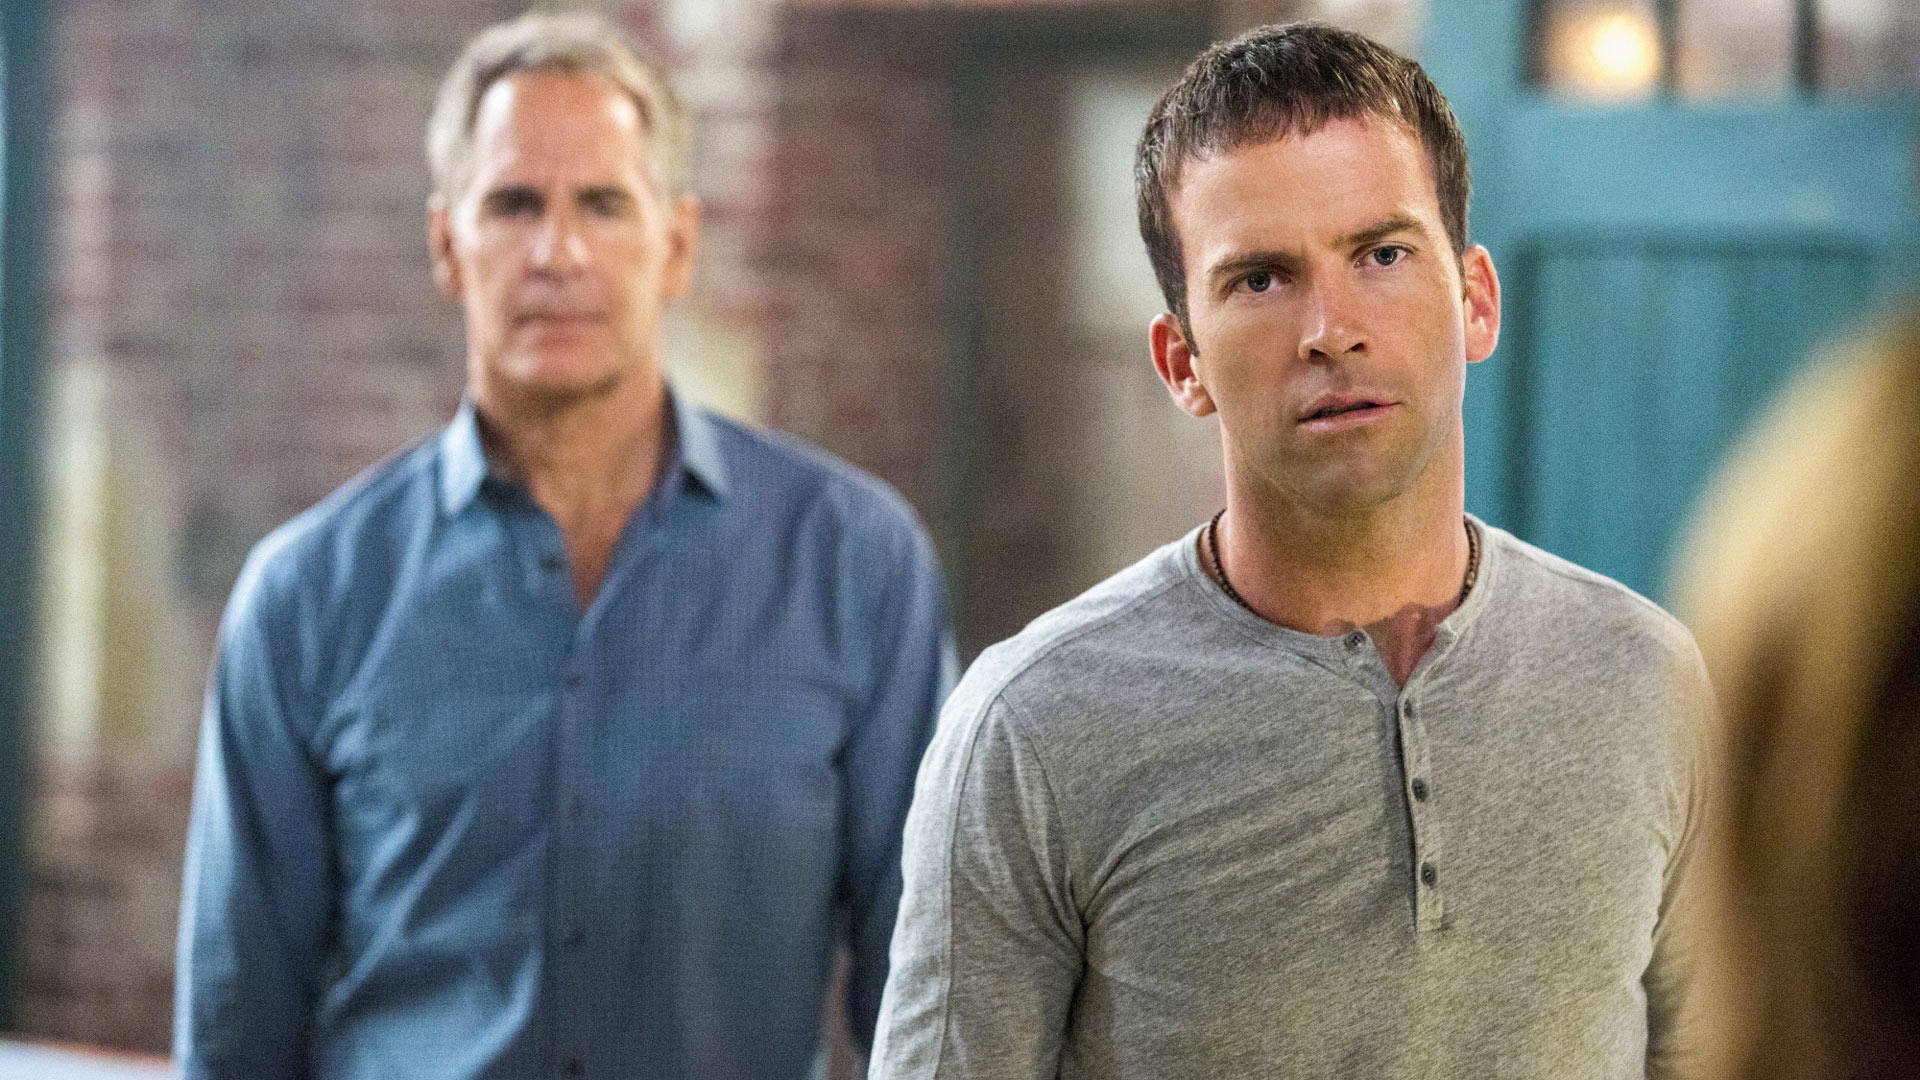 Scott Bakula as Dwayne Pride and Lucas Black as Christopher LaSalle